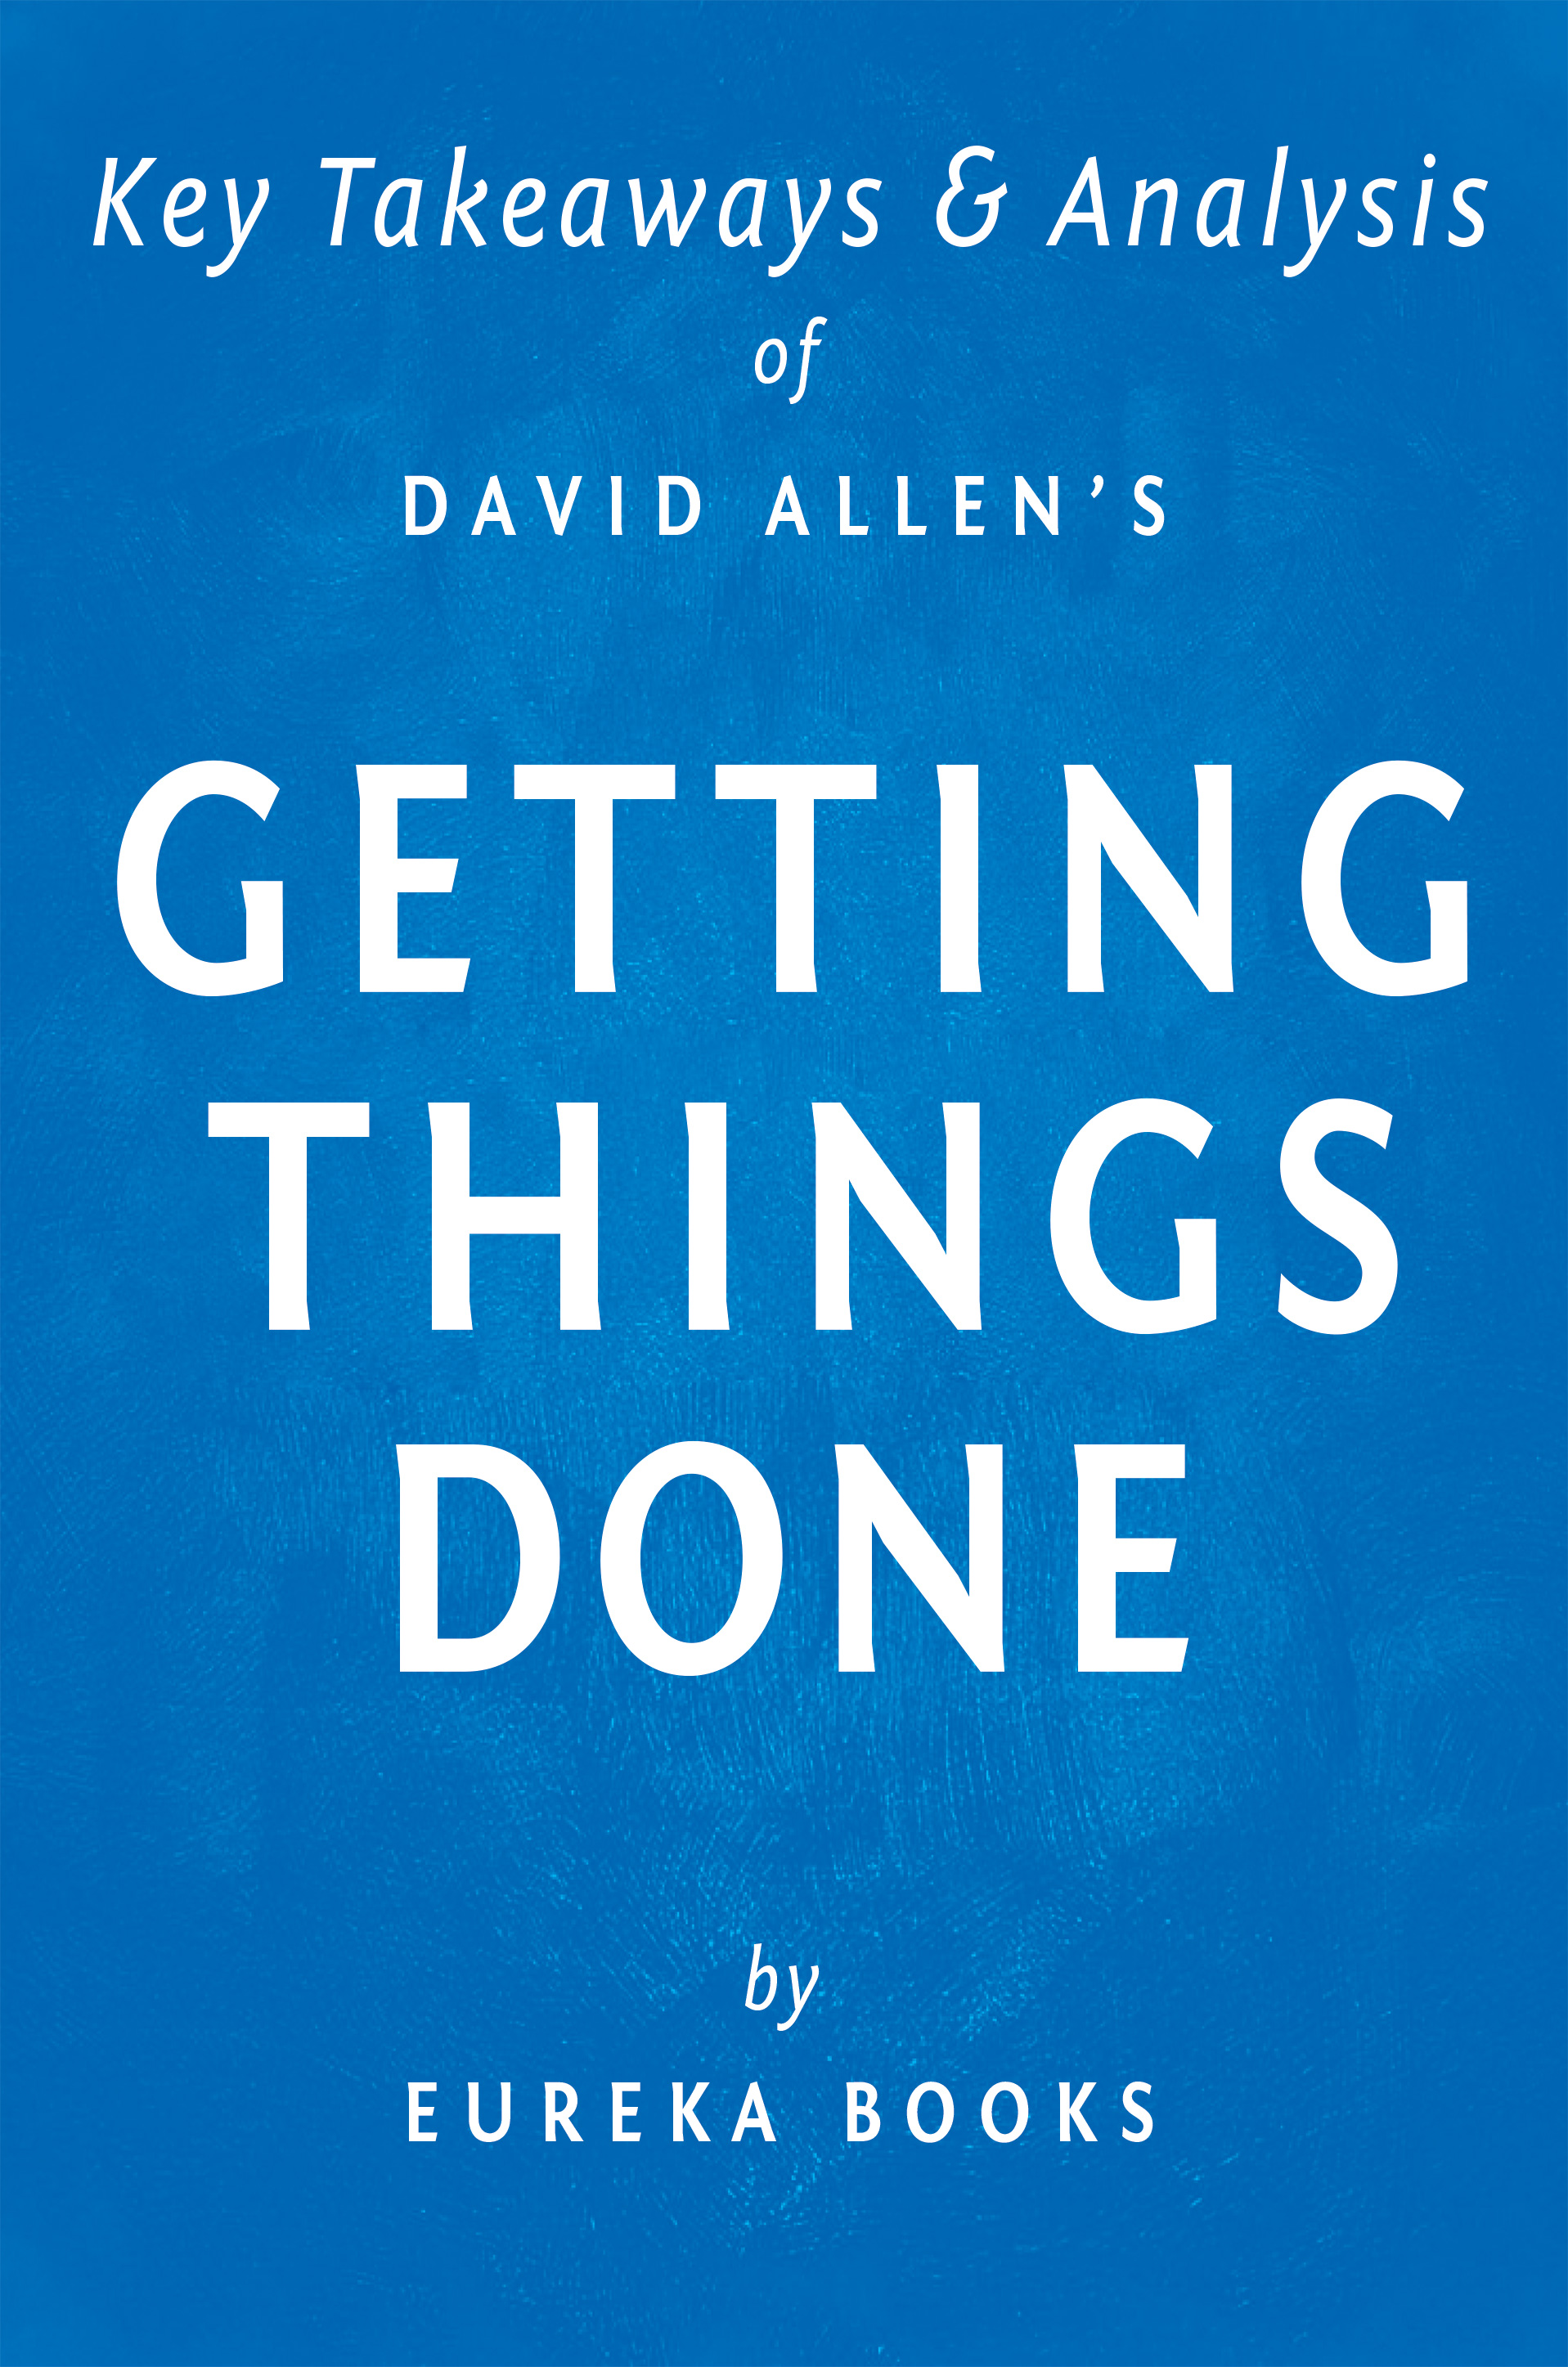 Download Ebook Getting Things Done by David Allen | Key Takeaways & Analysis by Eureka Books Pdf